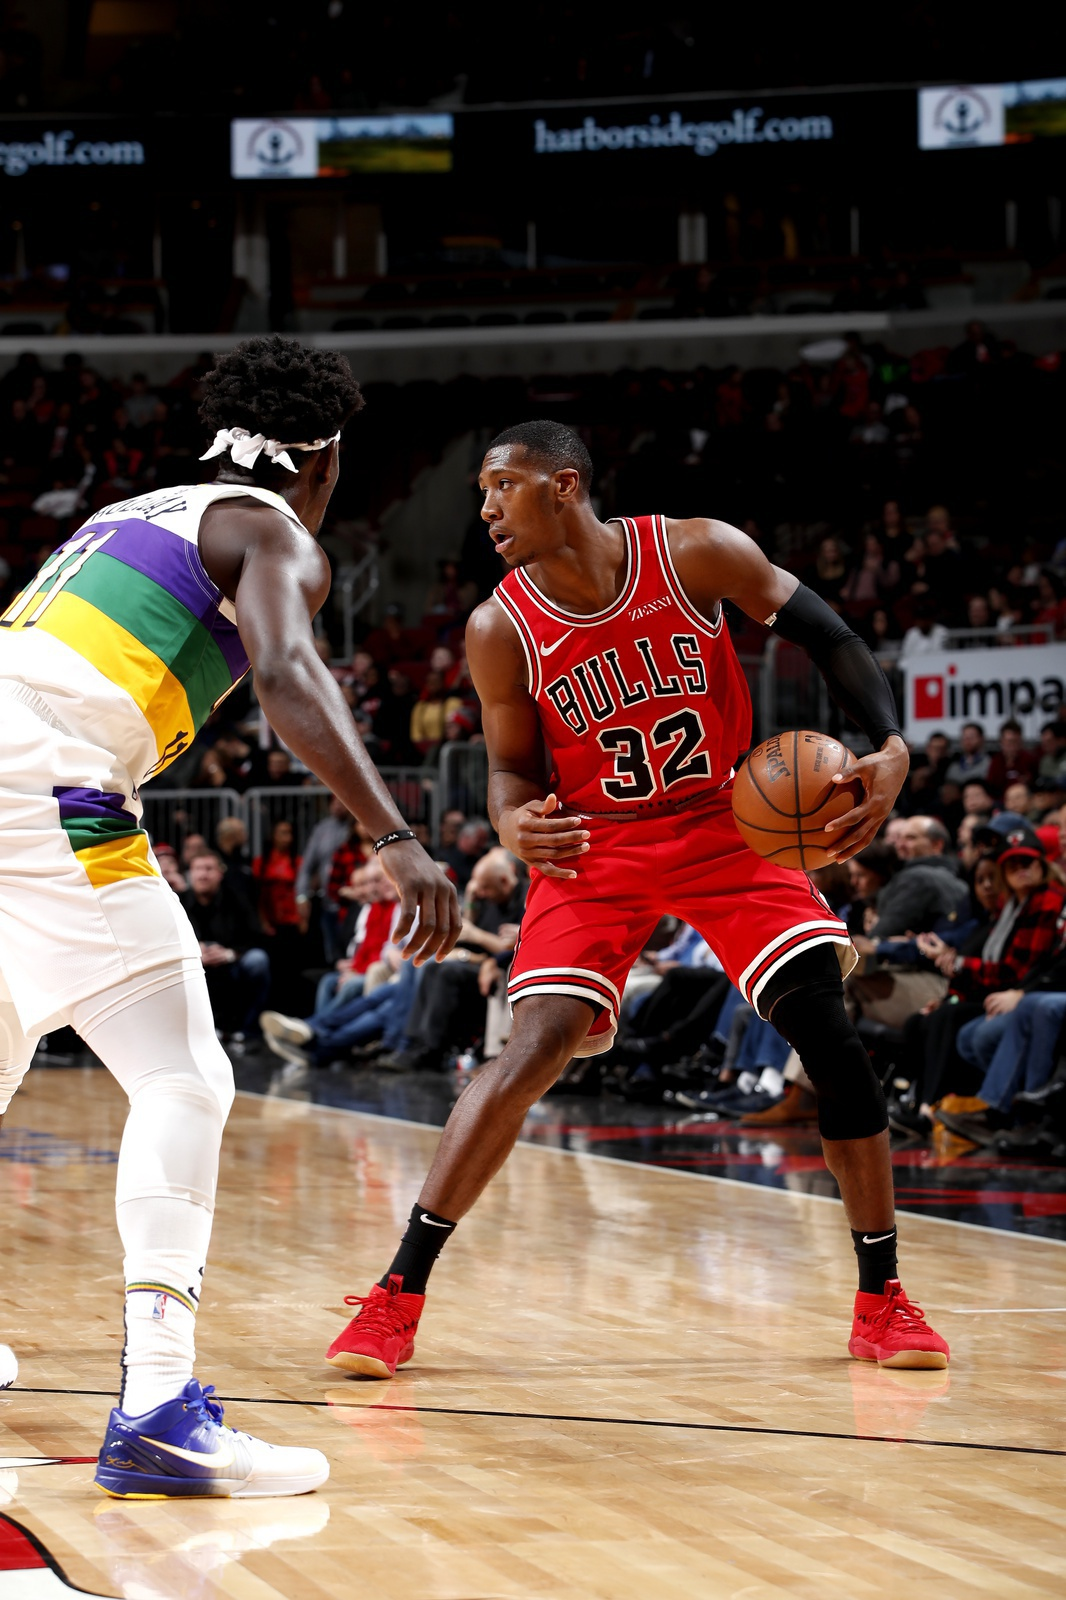 Kris Dunn #32 of the Chicago Bulls handles the ball against the New Orleans Pelicans on February 6, 2019 at United Center in Chicago, Illinois.